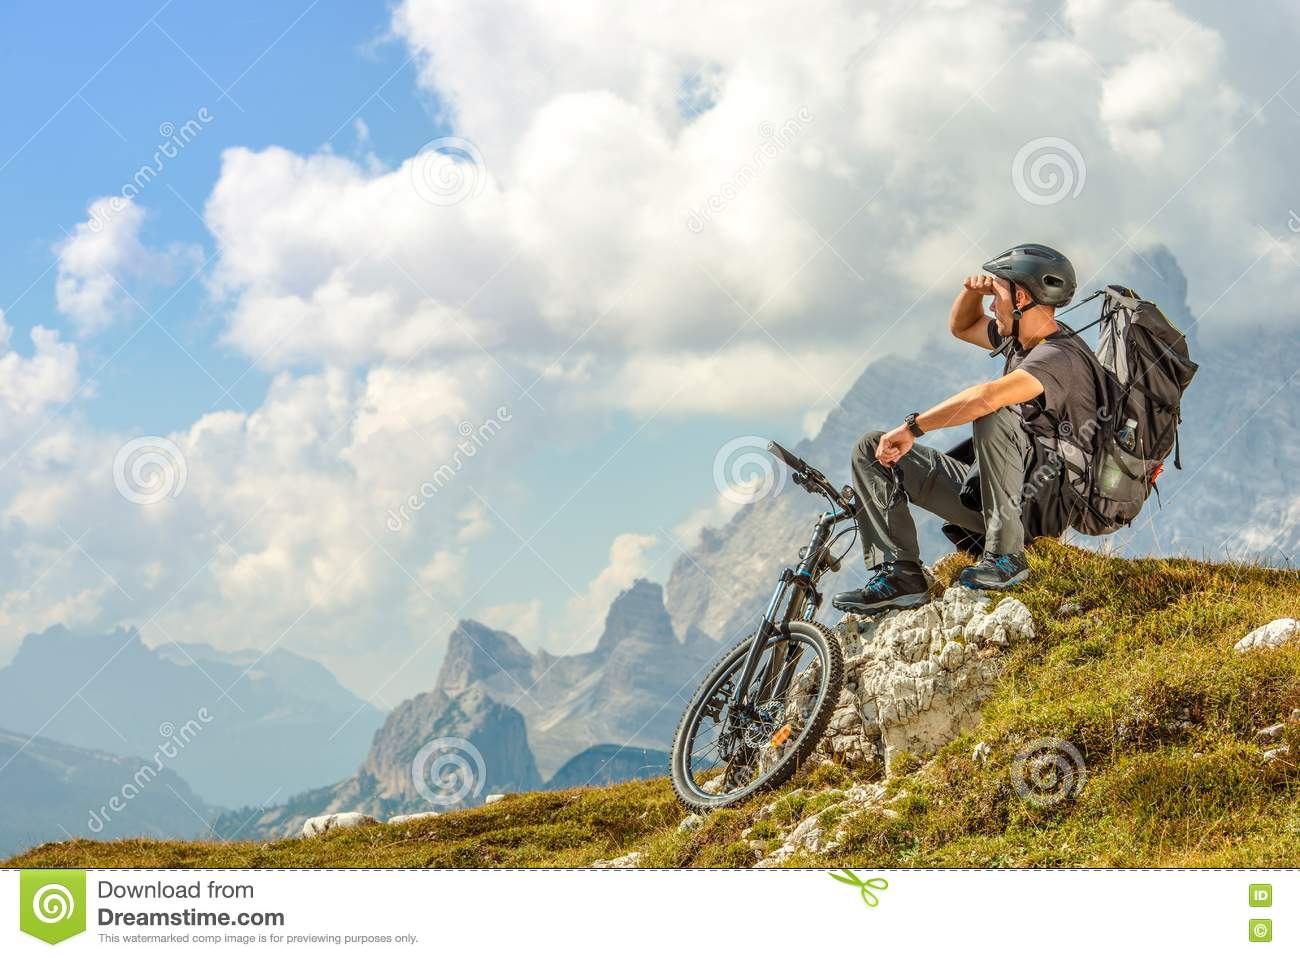 Biker on the Mountain Trail